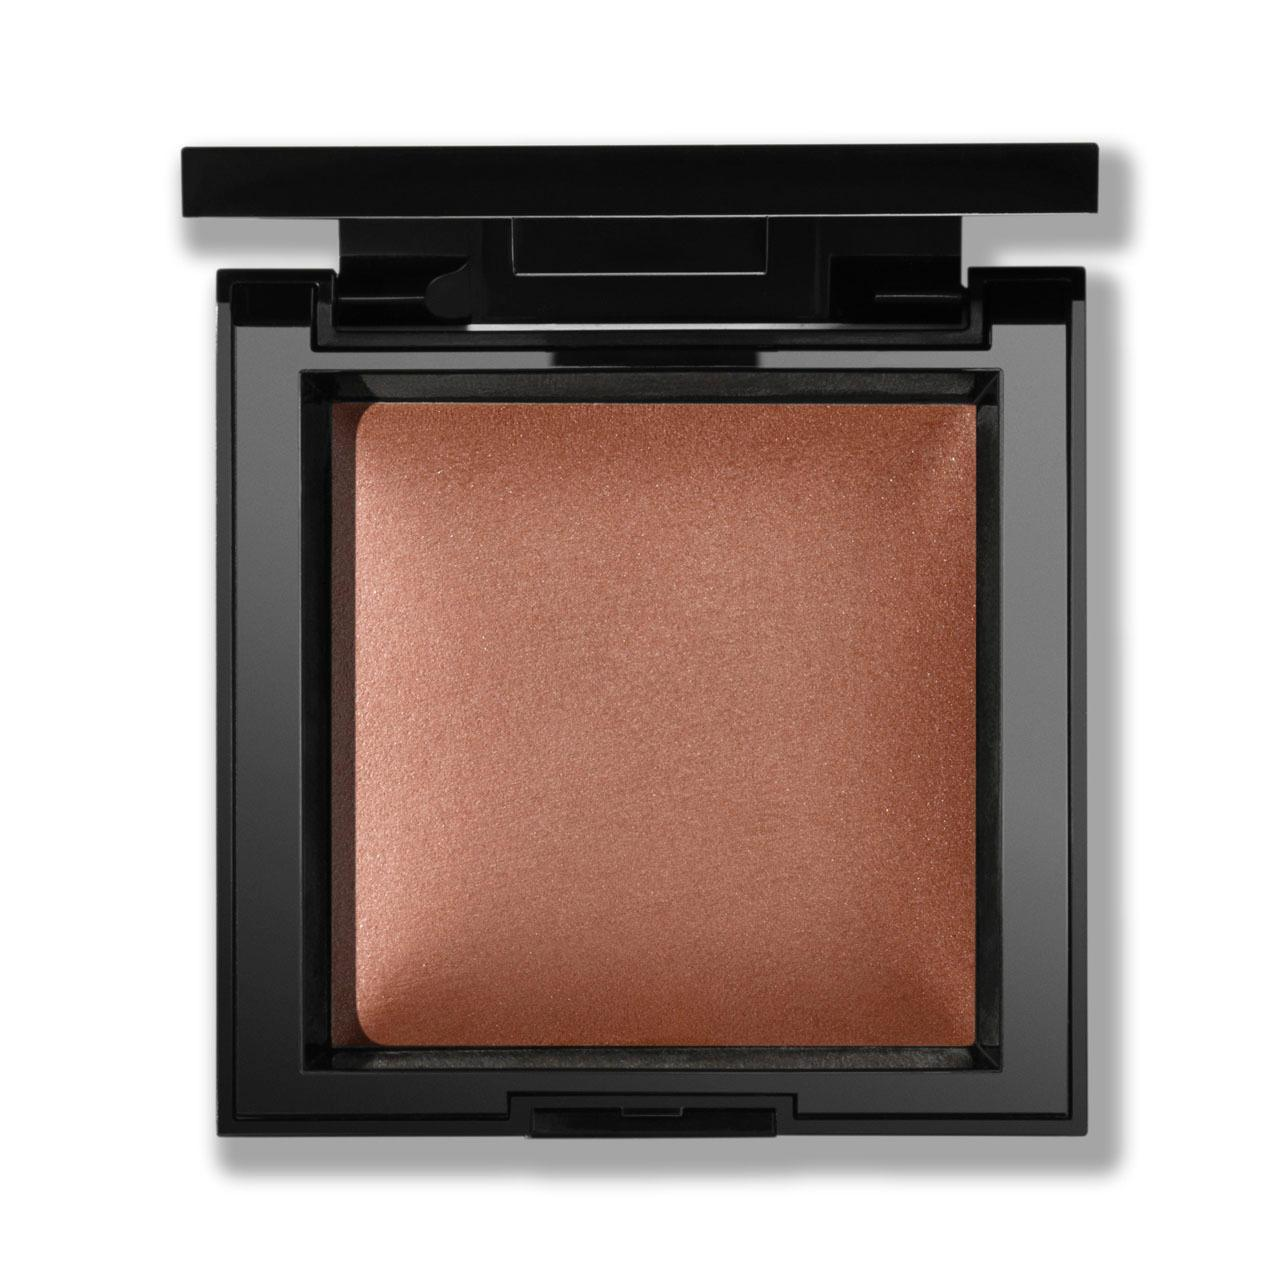 An image of bareMinerals Invisible Bronze Dark to Deep